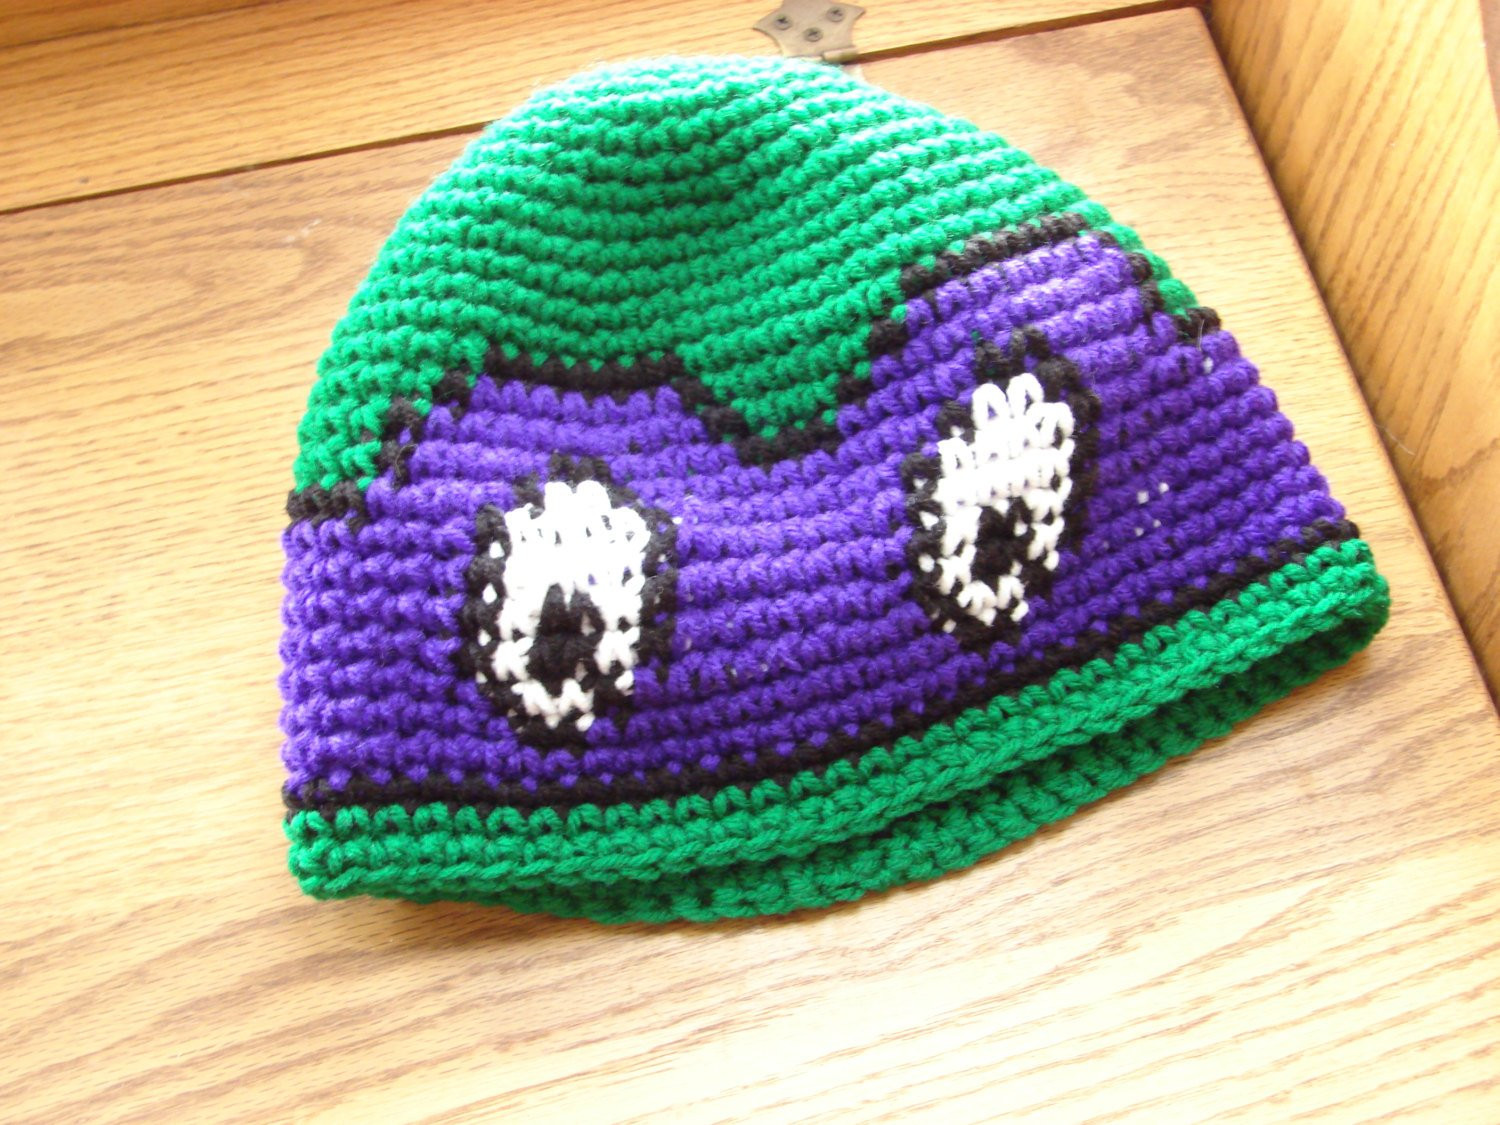 Crochet Ninja Turtle Hat Inspirational Crochet Teenage Mutant Ninja Turtle Beanie Hat the Color Of Innovative 46 Pictures Crochet Ninja Turtle Hat